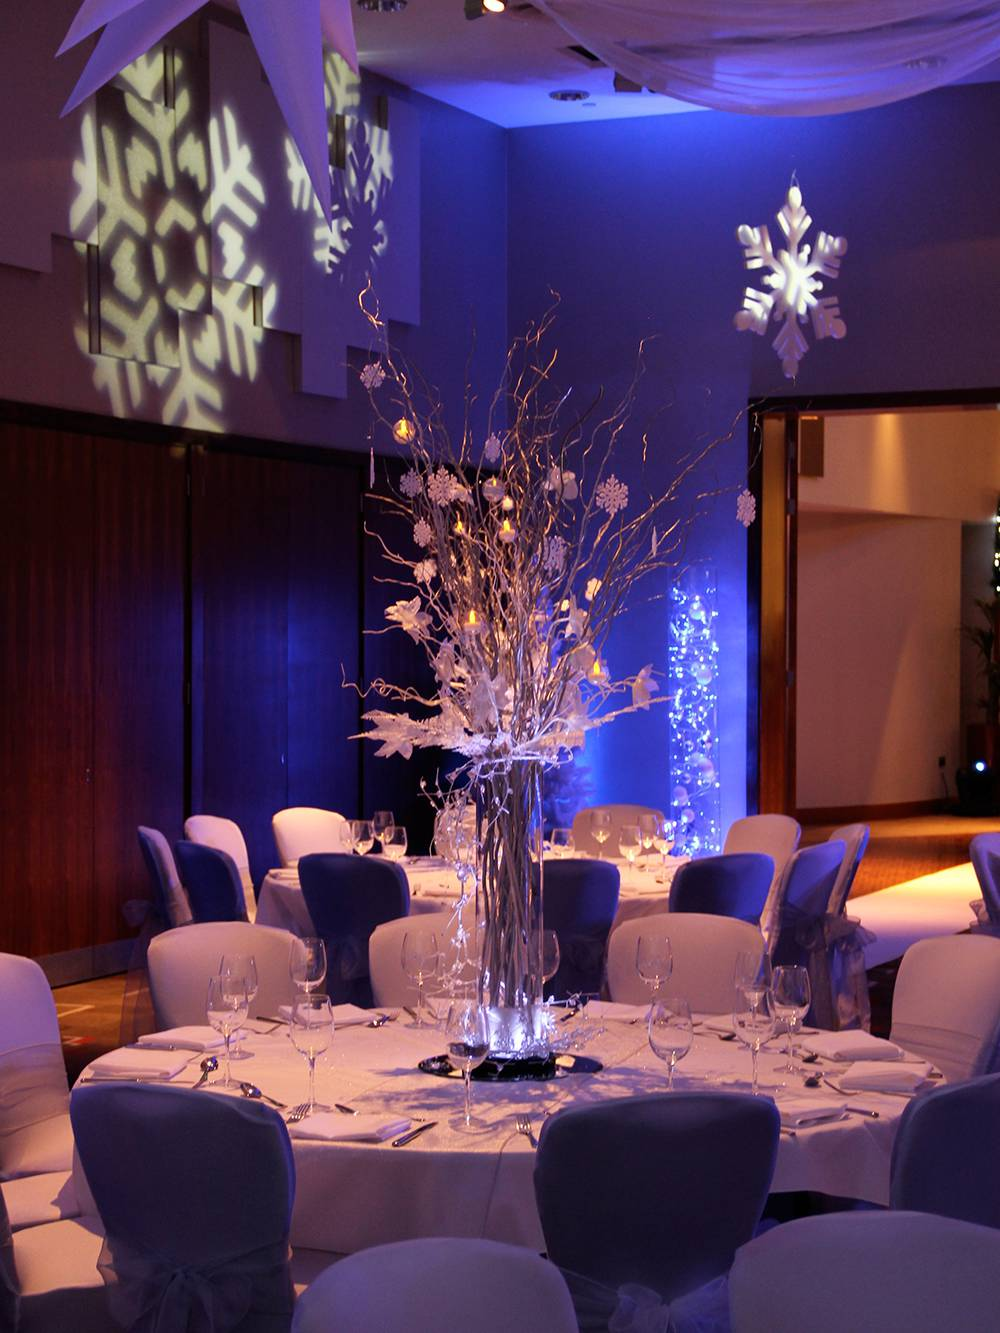 Winter Wonderland themed lighting at Hilton Hotel Liverpool